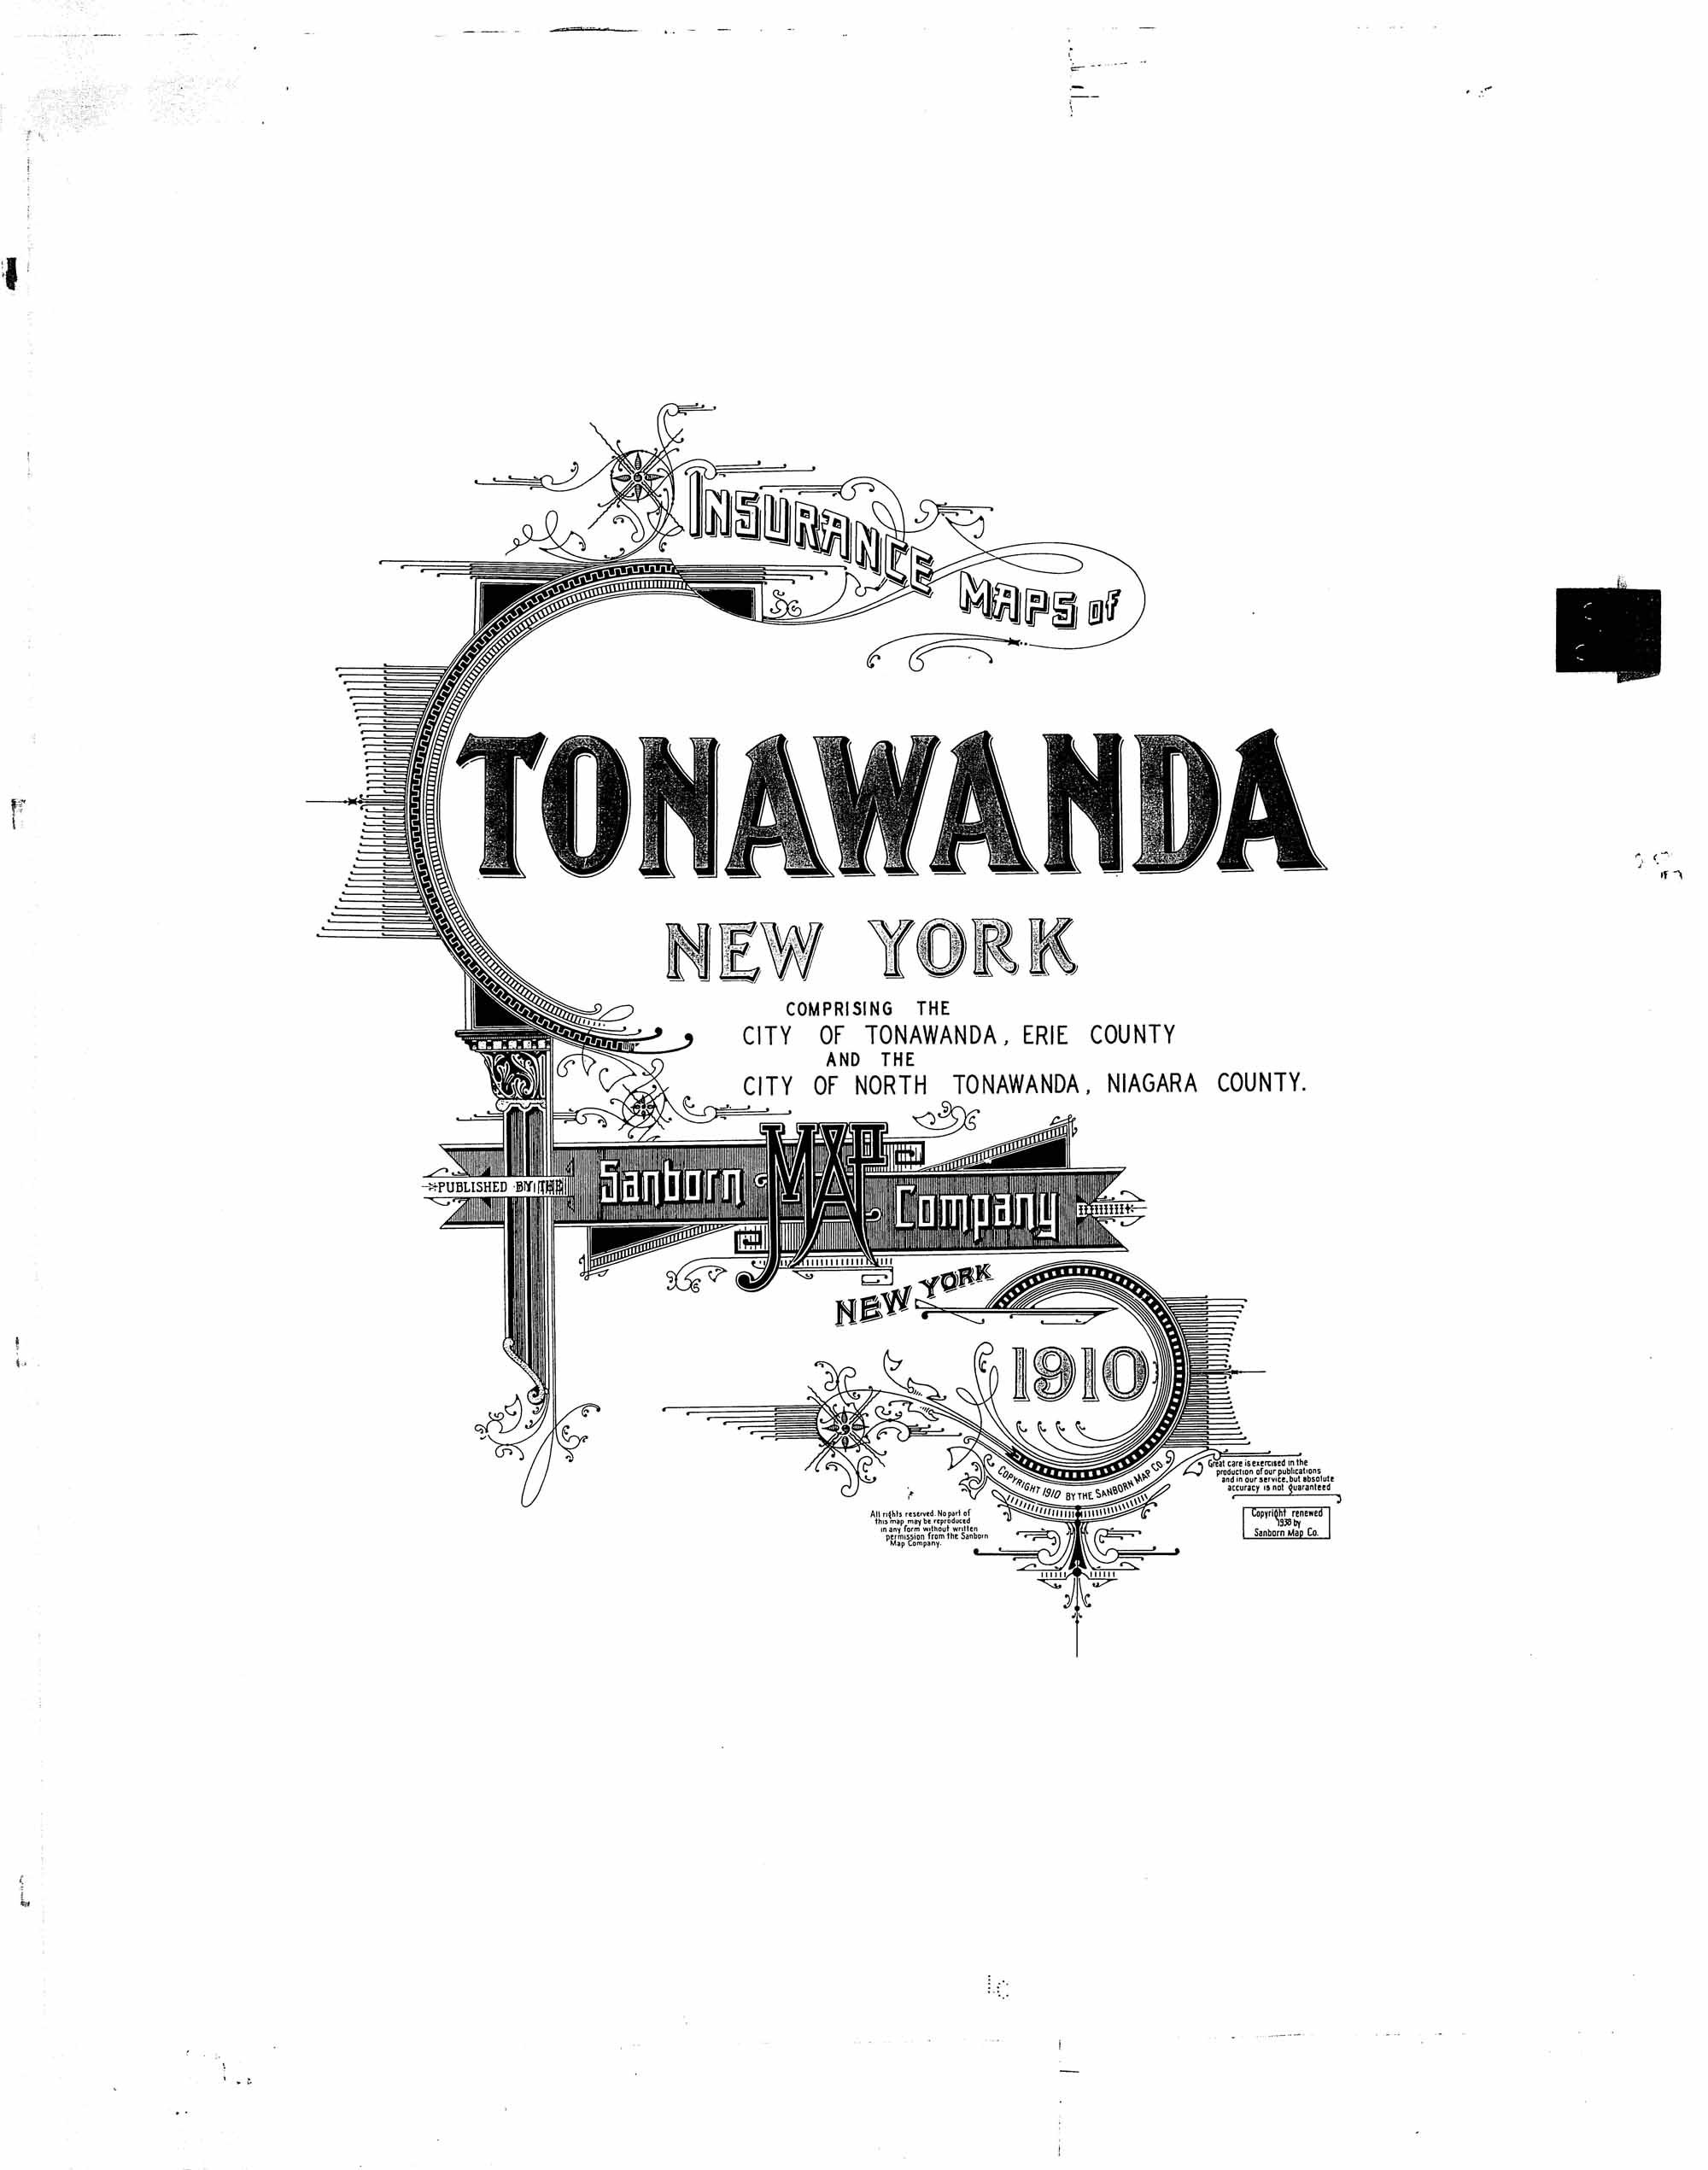 Tonawanda+1910-Jan.+1951,+Sheet+0.jpg